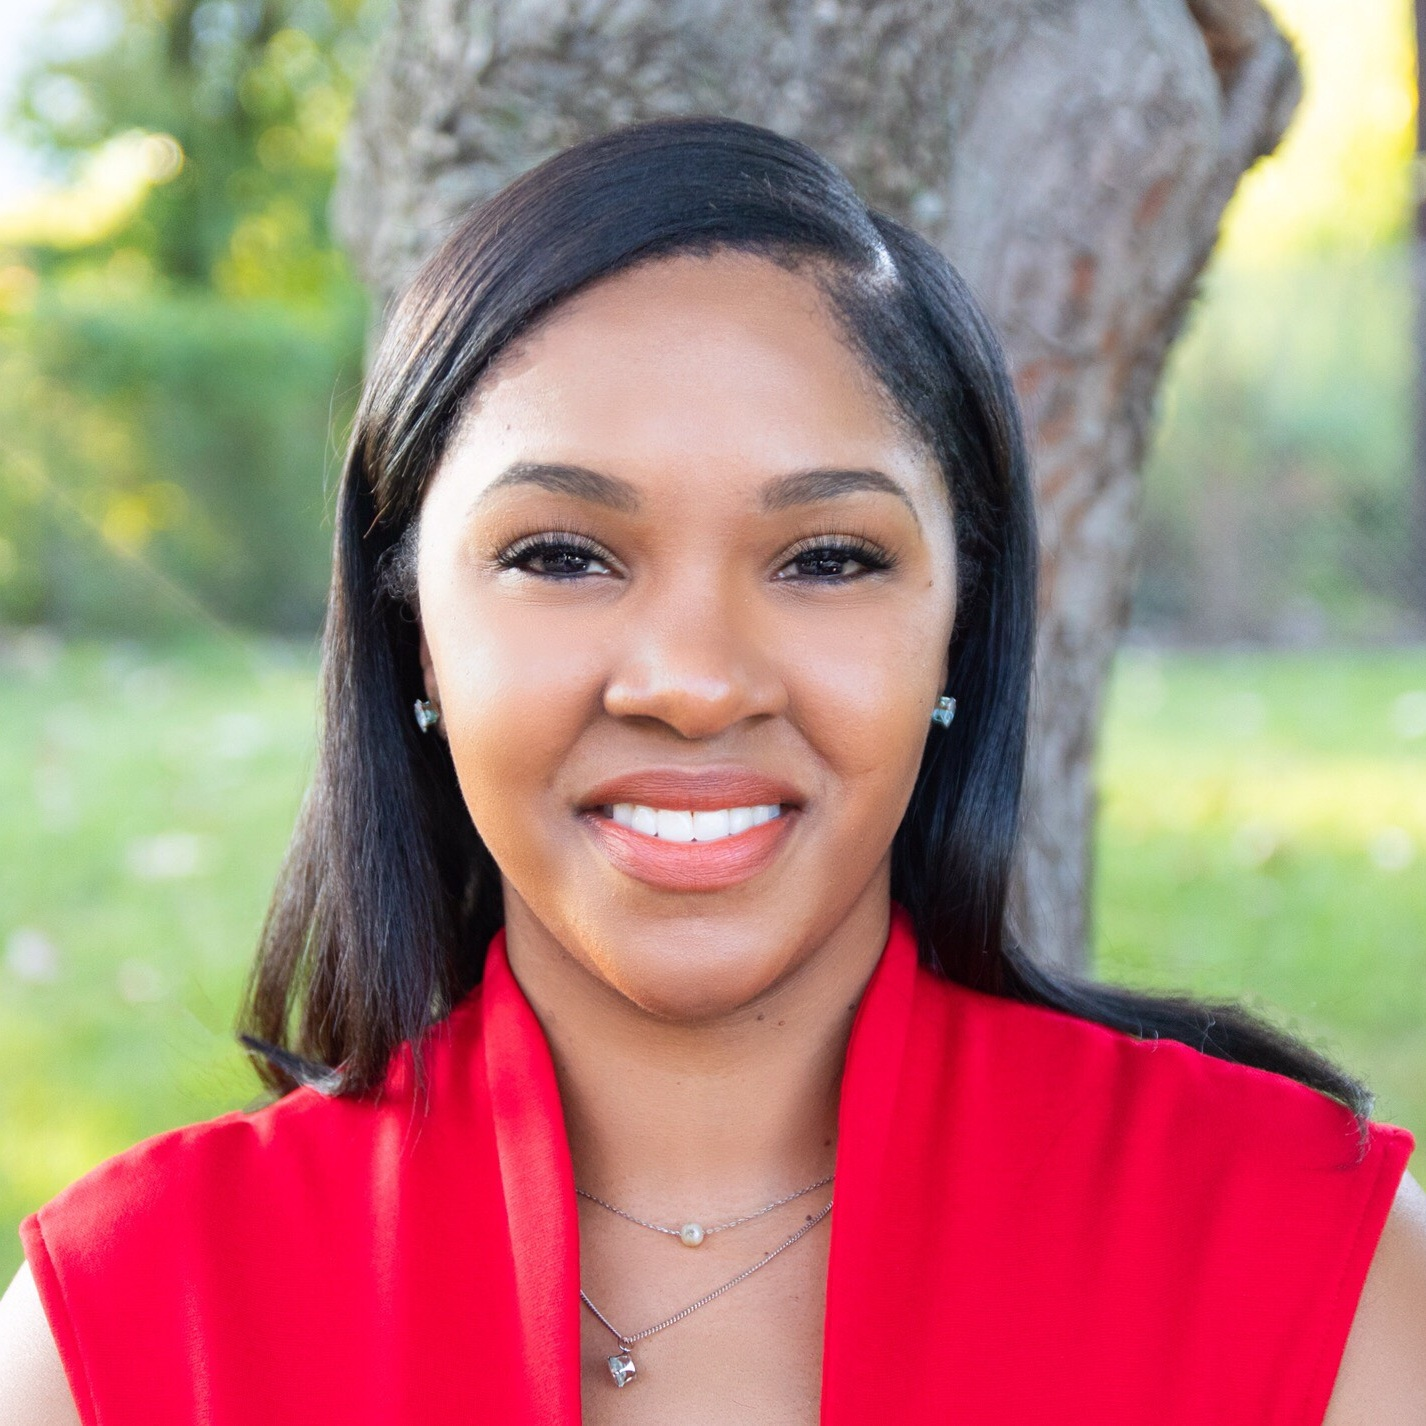 """SHANIKA JOHNSON - License Type: Counselor, MS, NCC, LPCOffice Address: 1801 North Tryon Street, Suite B304, Charlotte, NC, 28206Telephone Number: (704) 504-7274Website: www.innovativelifestylenetwork.comSpecialties:""""As the Millennial Therapist, I specialize in helping individuals cope with the real stressors of balancing work, relationships, family demands and personal life. I understand how easy it is to lose yourself while trying to conquer all of life's challenges from career uncertainty, to finding your purpose and fulfilment in a world that is constantly changing. With five or more years of transforming the lives of children, adolescents and families, I am able to provide successful and effective counseling, coaching, and educational workshops for all individuals.I offer evening and weekend appointments to help accommodate all clients' schedules. Our sessions are nonjudgmental and tailored to meet your needs as well as assist you in identifying and maximizing your strengths to explore the best solution in overcoming your struggles."""""""